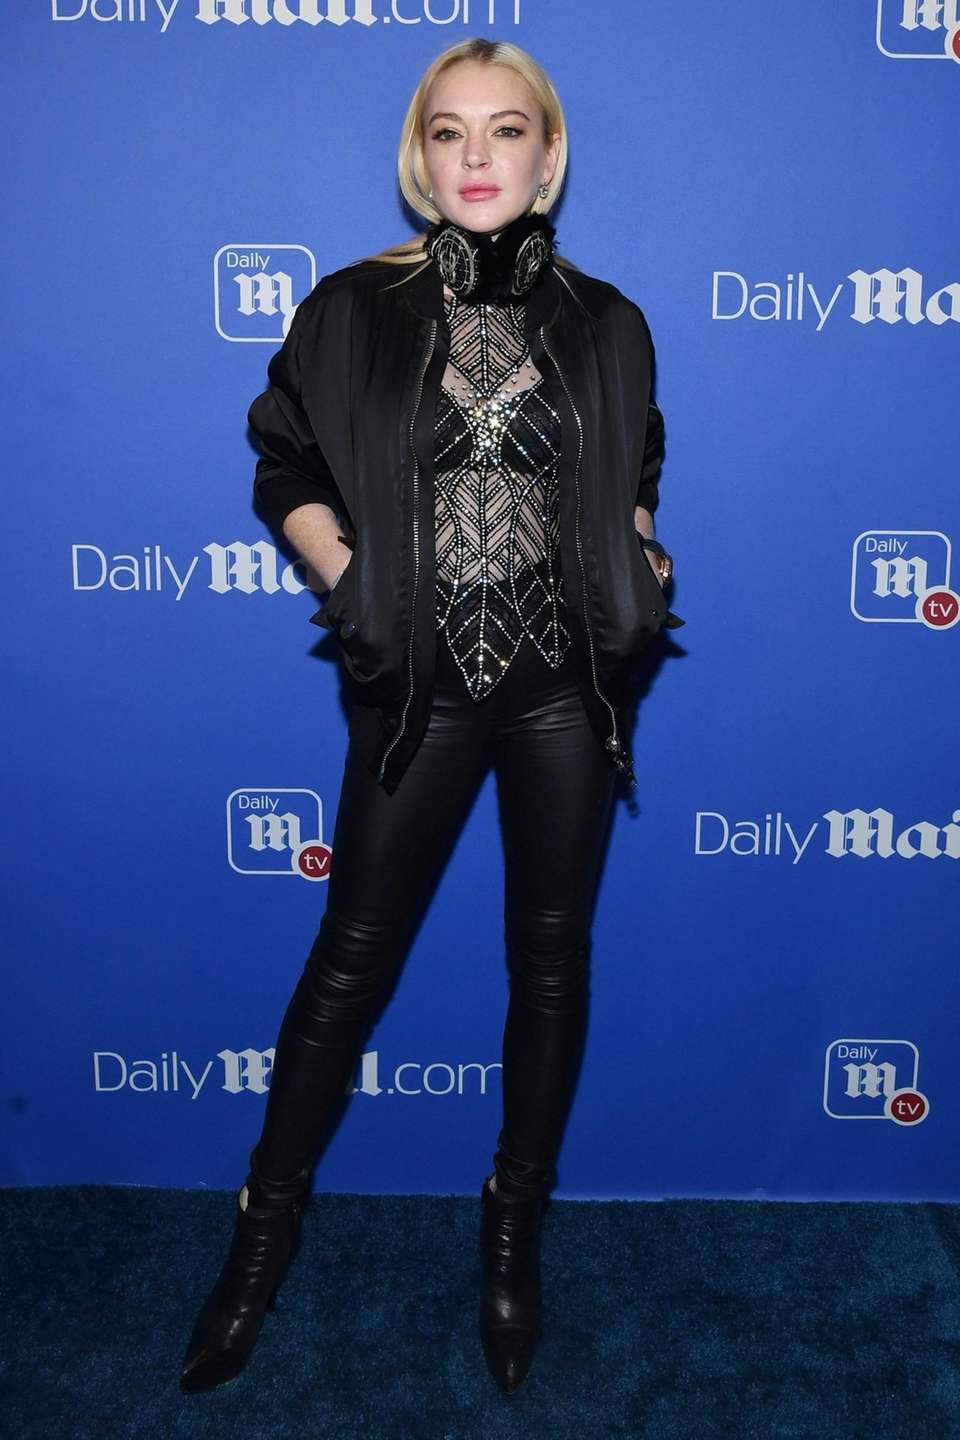 Lindsay Lohan attends DailyMail.com & DailyMailTV Holiday Party